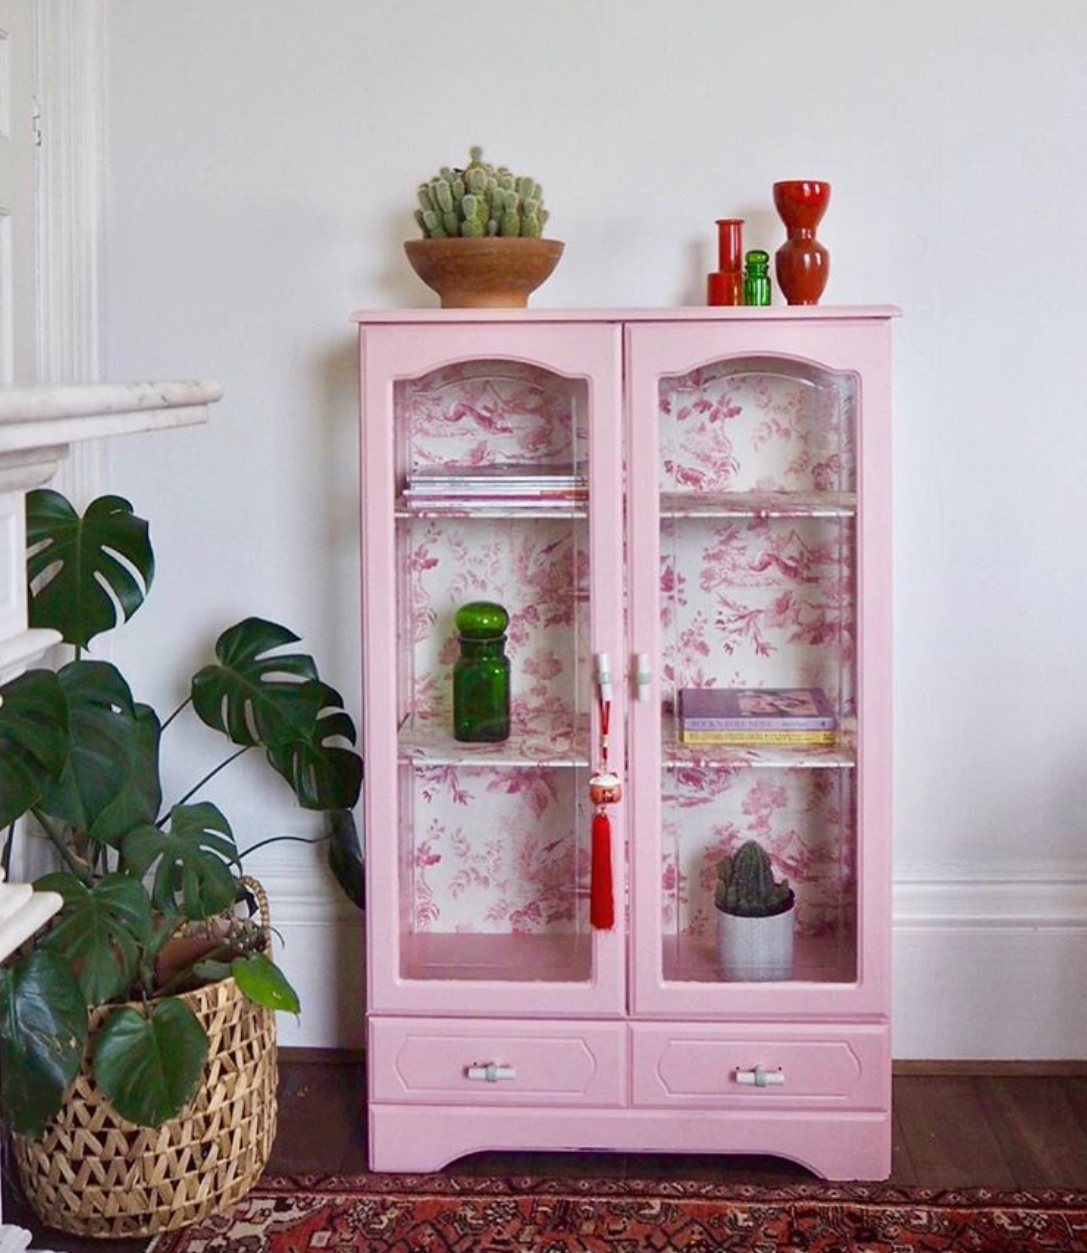 An upcycling project I did as part of Revamp Restyle Reveal that took no time.